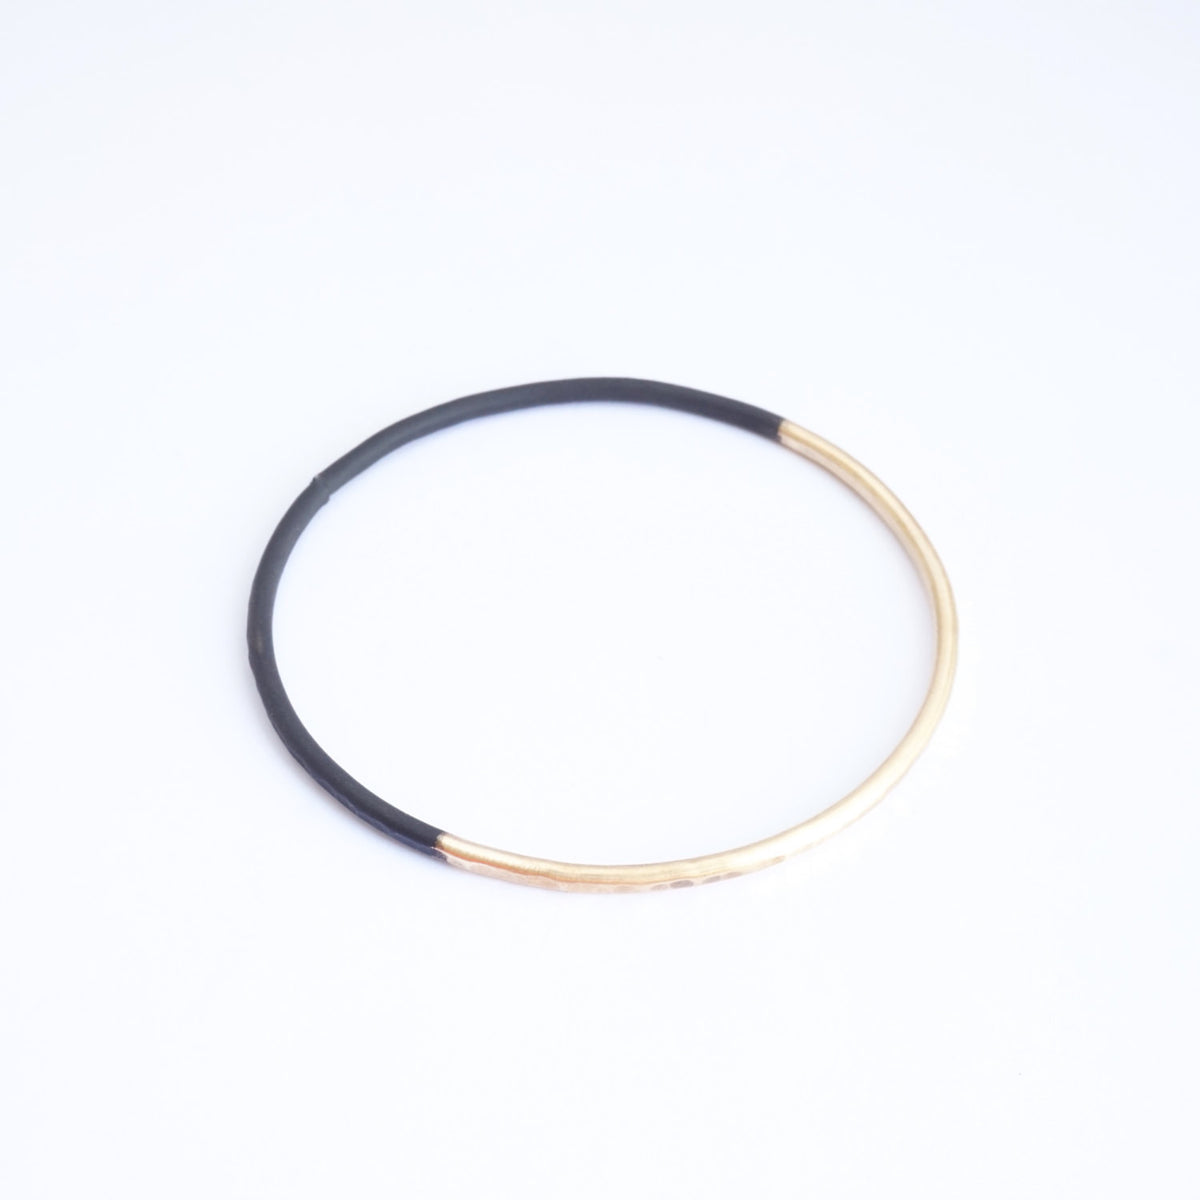 Hand-Made Two-Tone Gold Colored Hammered & Dipped Brass Bracelet Half Gold Tone & Half Black - 0145 - Virginia Wynne Designs